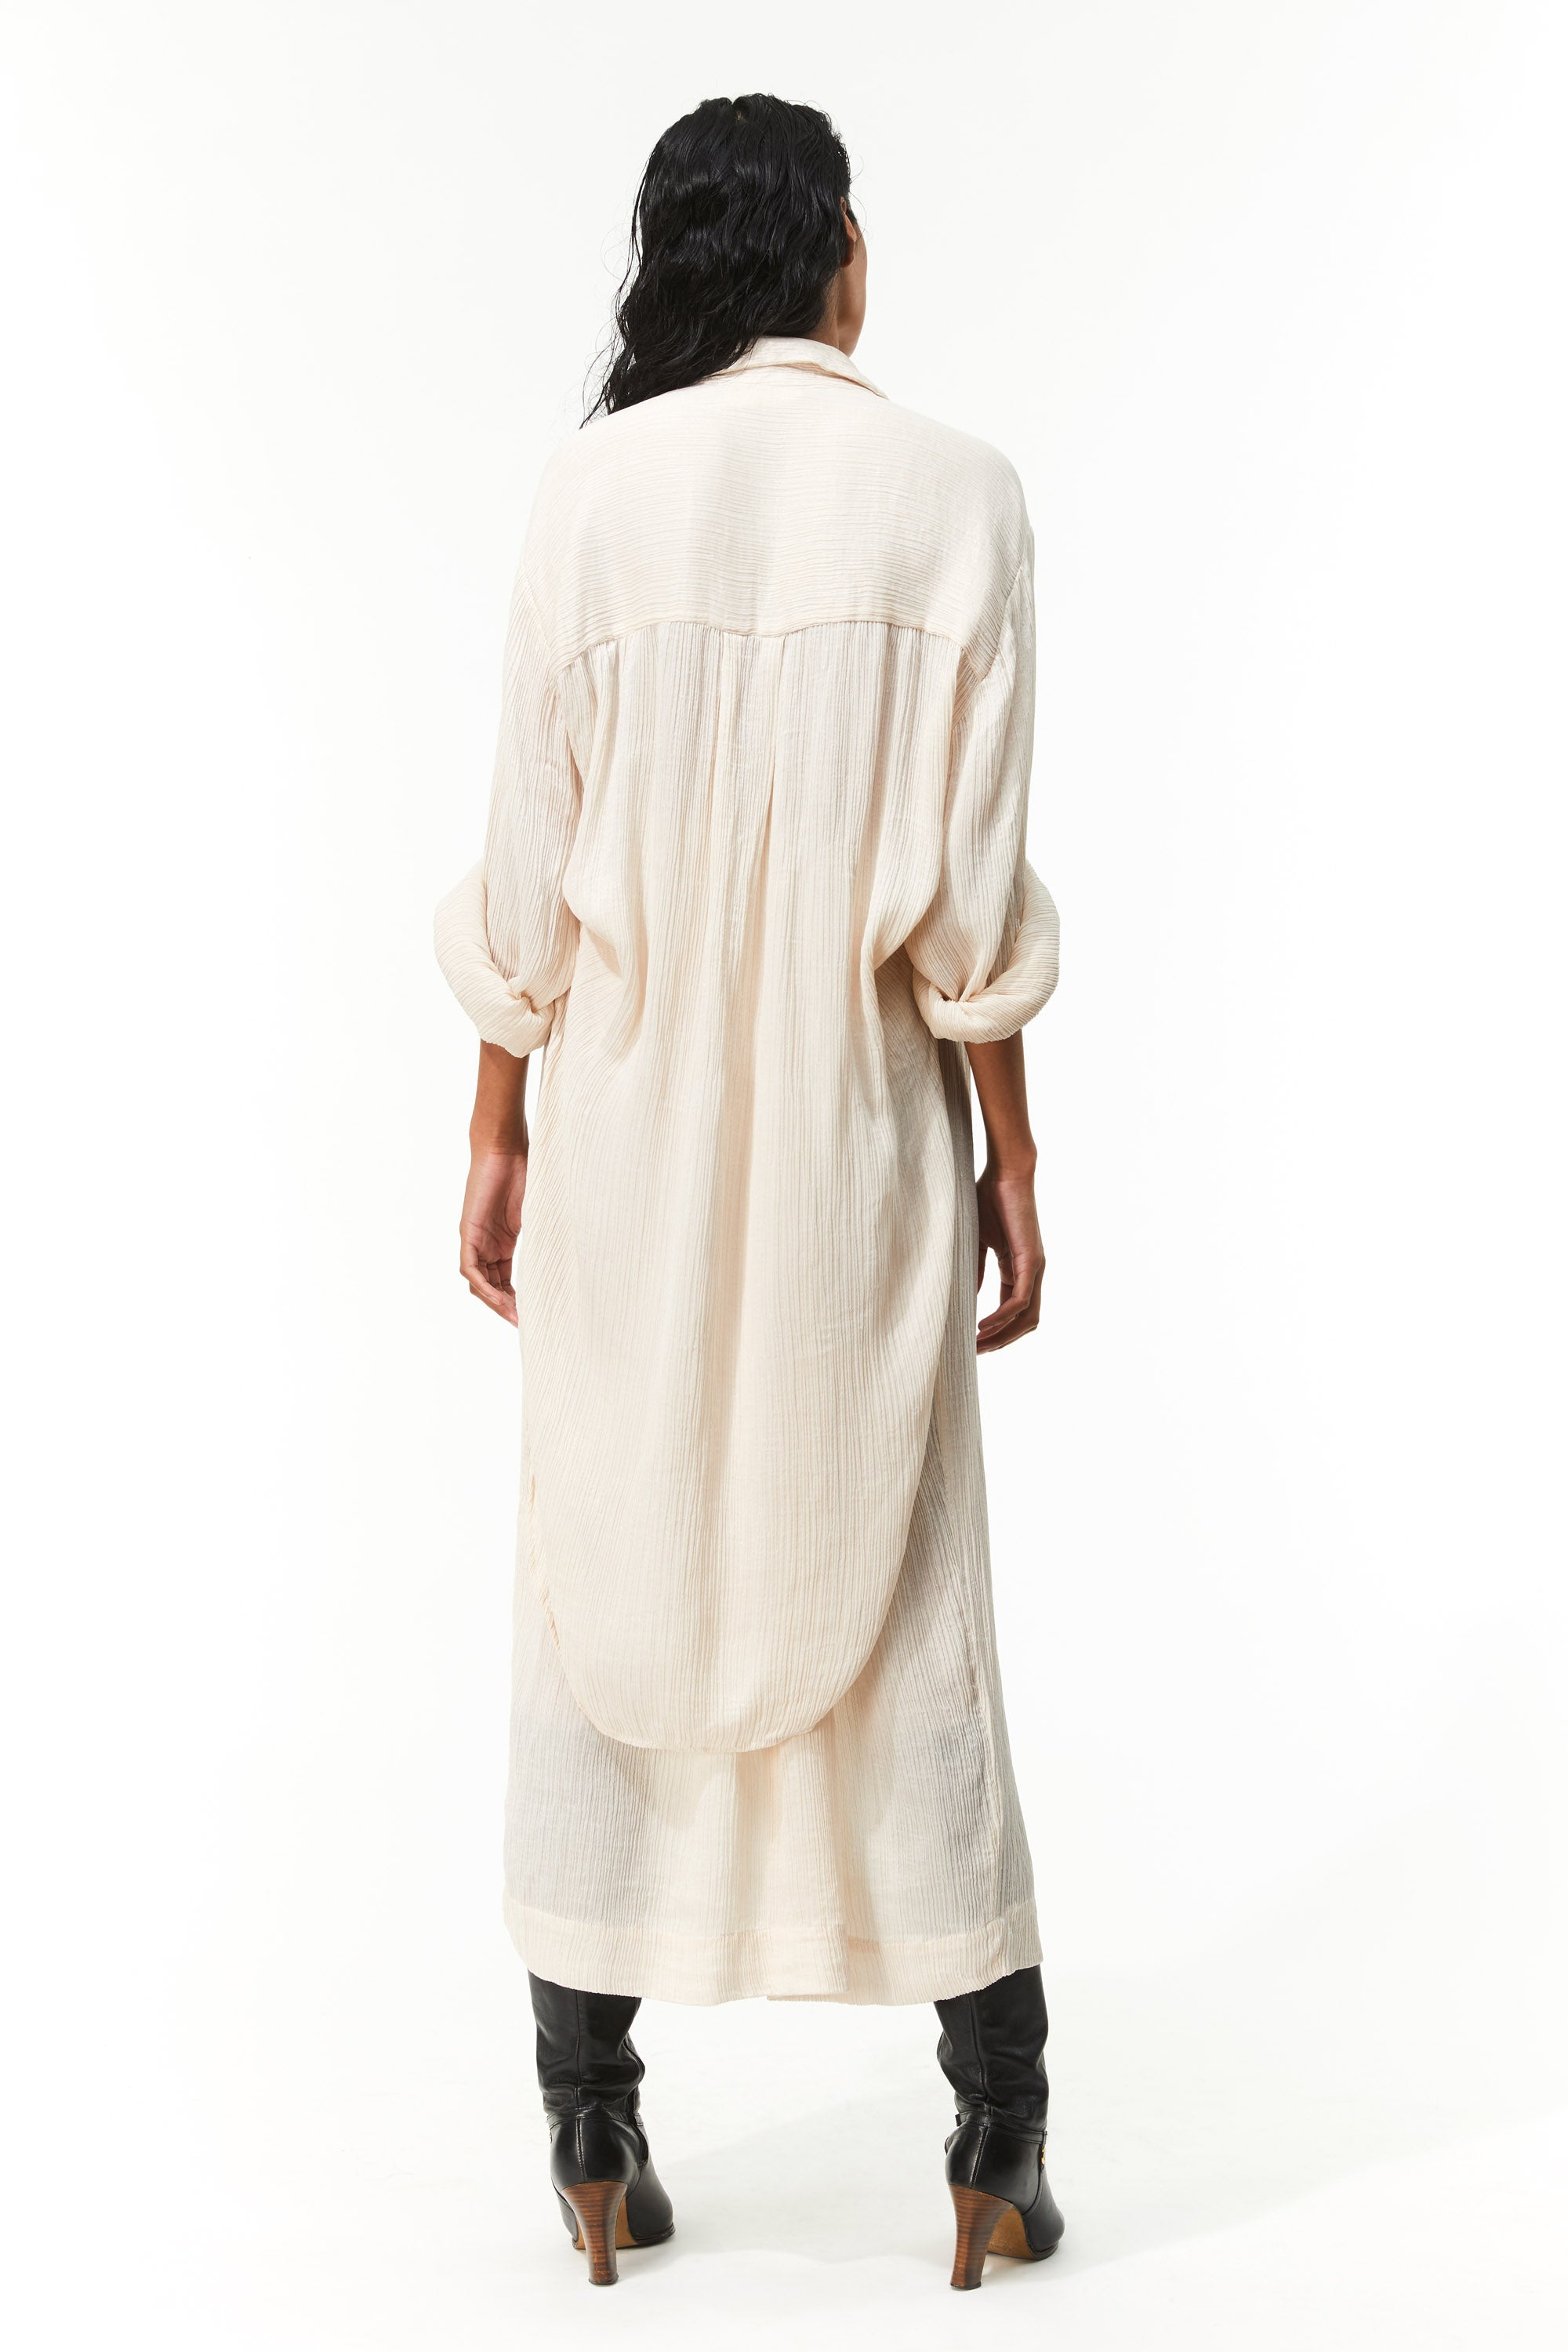 Mara Hoffman Ivory Agata Dress in Tencel Lyocell (back)